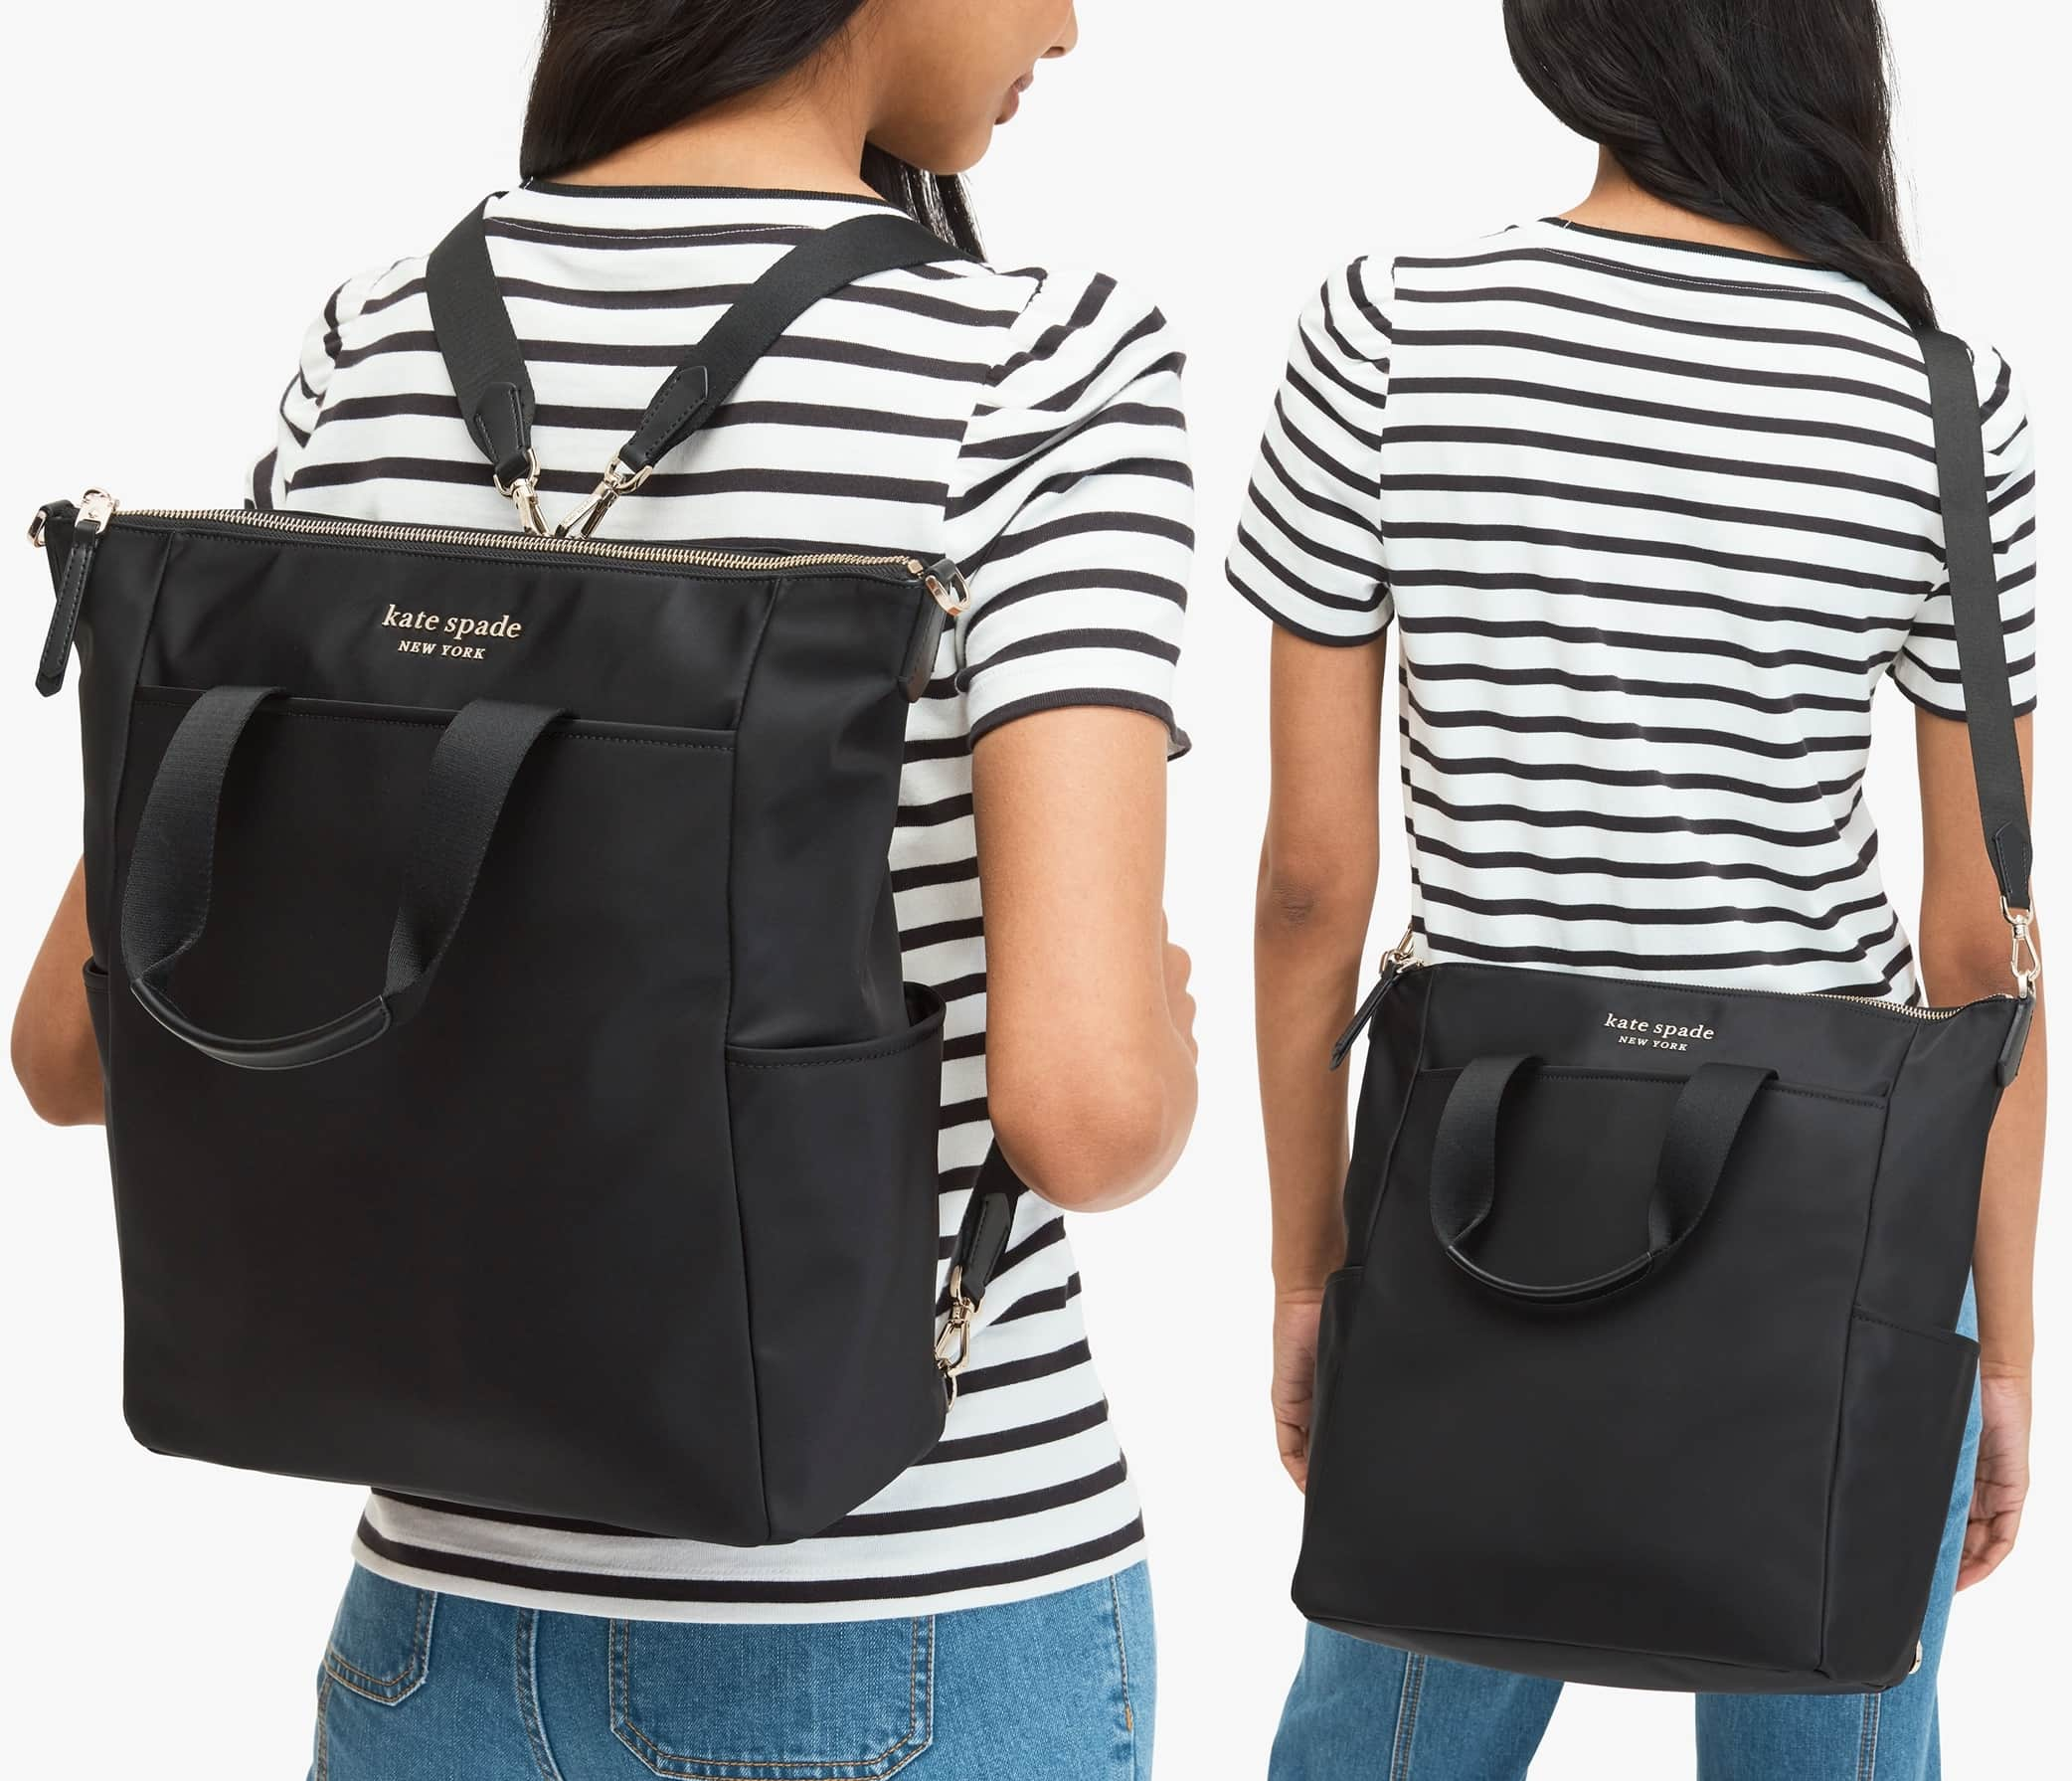 Gleaming hardware and smooth leather trim bring metropolitan-chic style to a glossy nylon backpack that easily converts to a sleek tote or crossbody bag